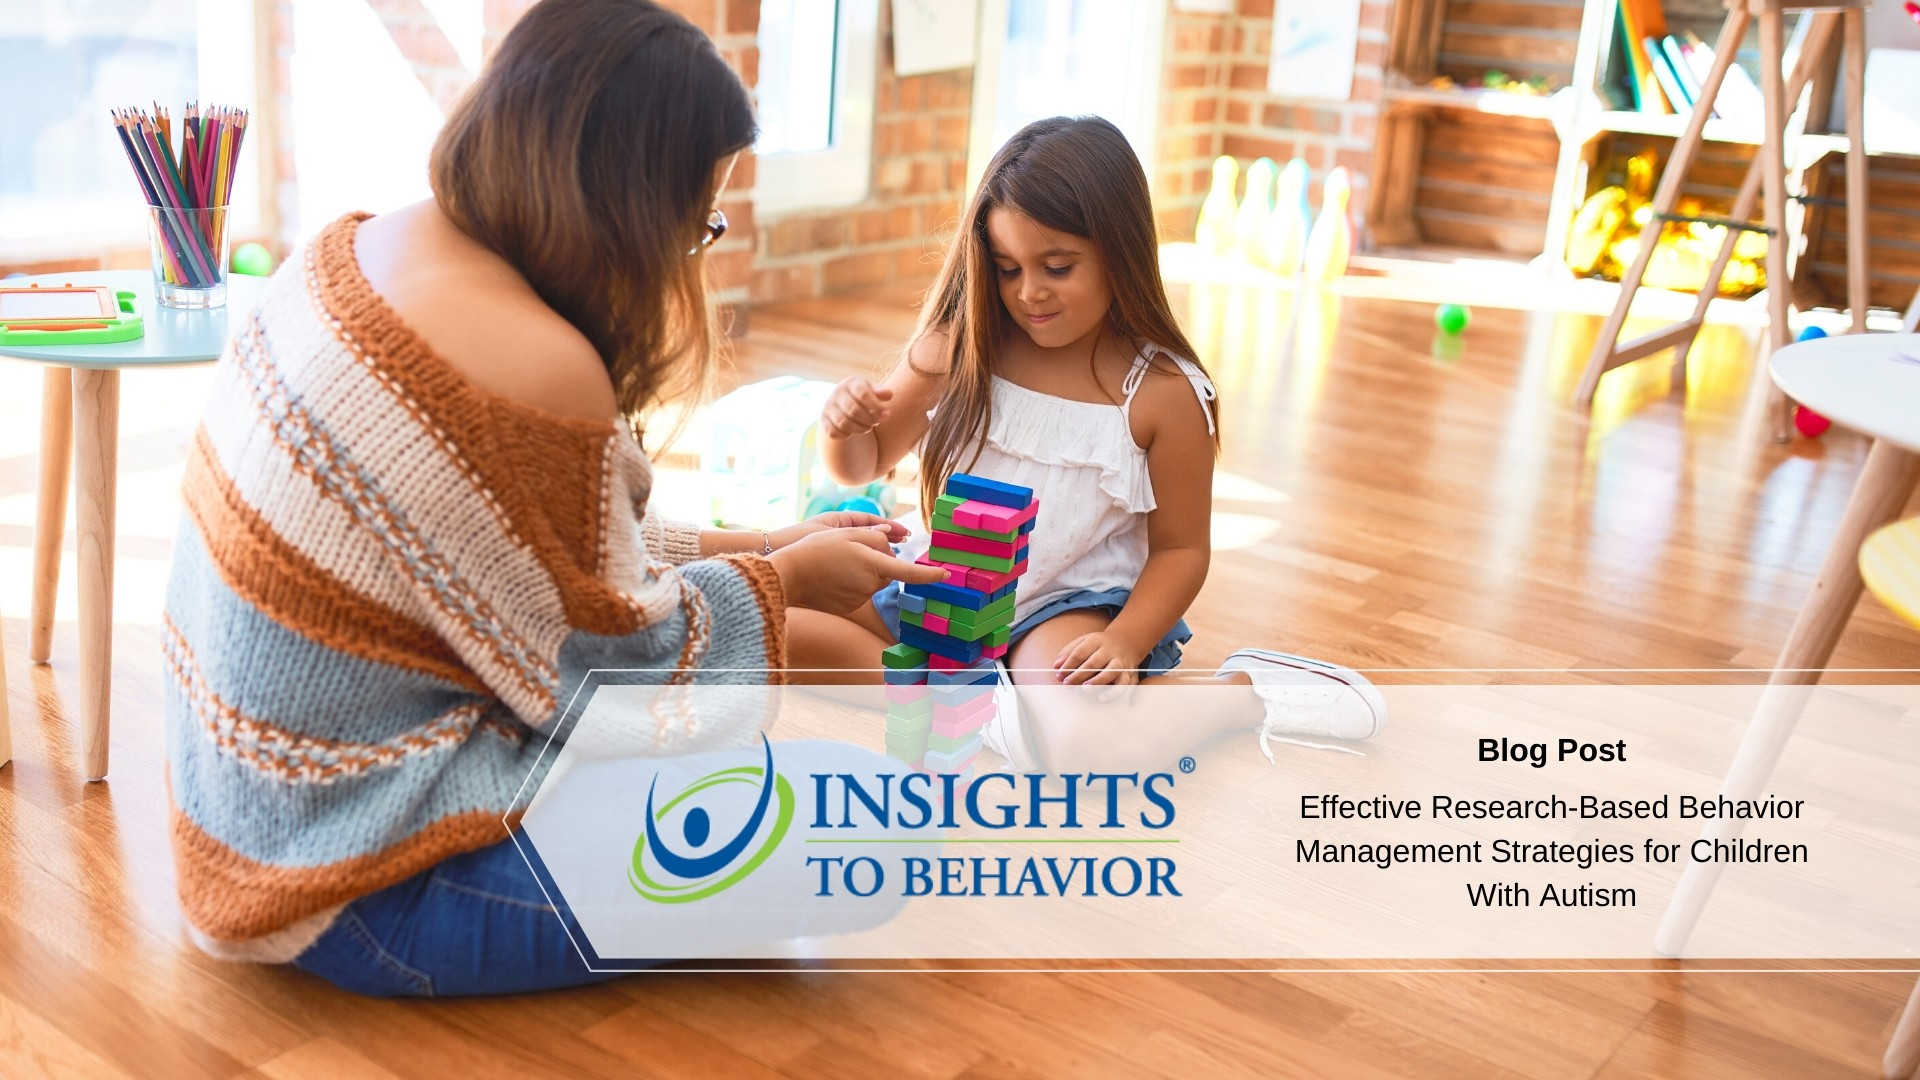 Effective research-based behavior management strategies.